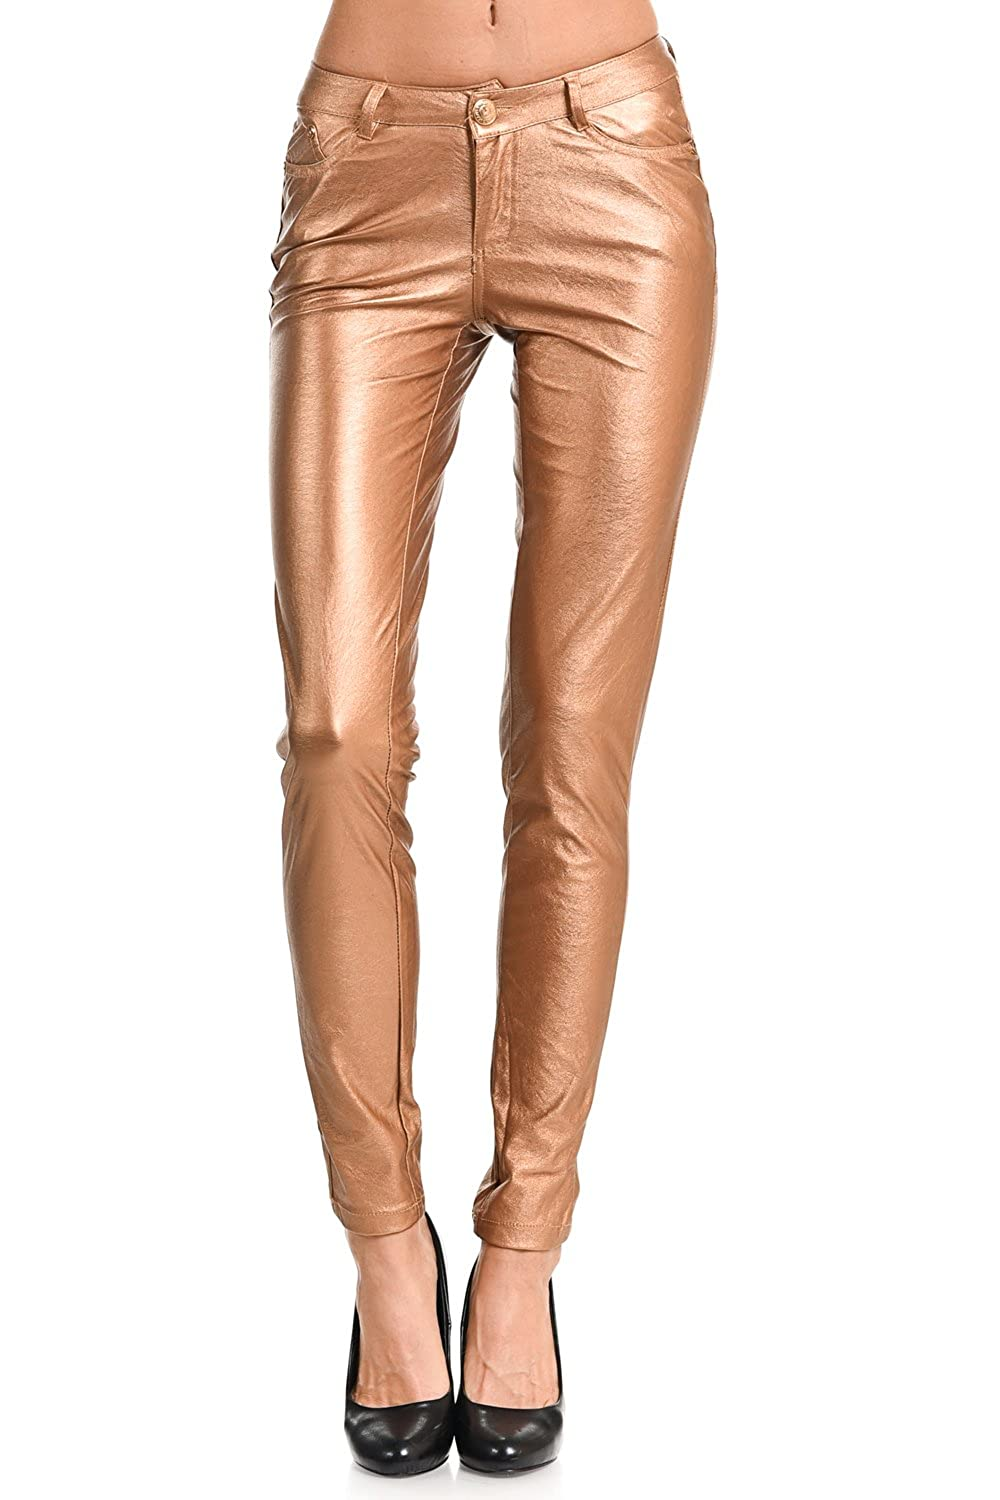 VIRGIN ONLY Women's Skinny metallic PU